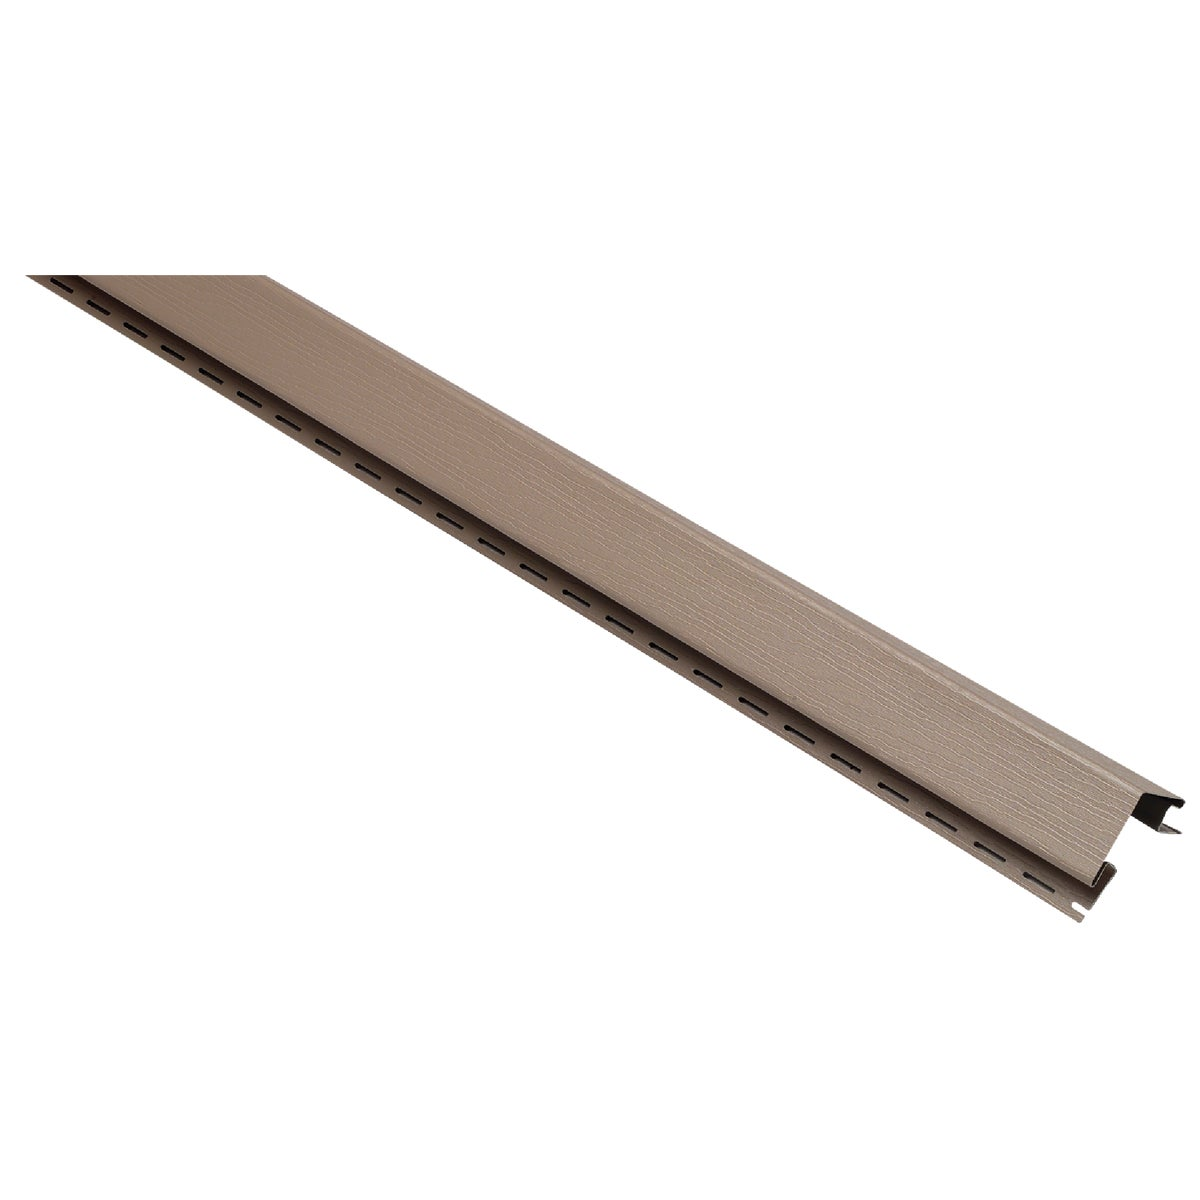 "3/4"" CLAY OUTSIDE CORNER - 4002225 by Bluelinx"